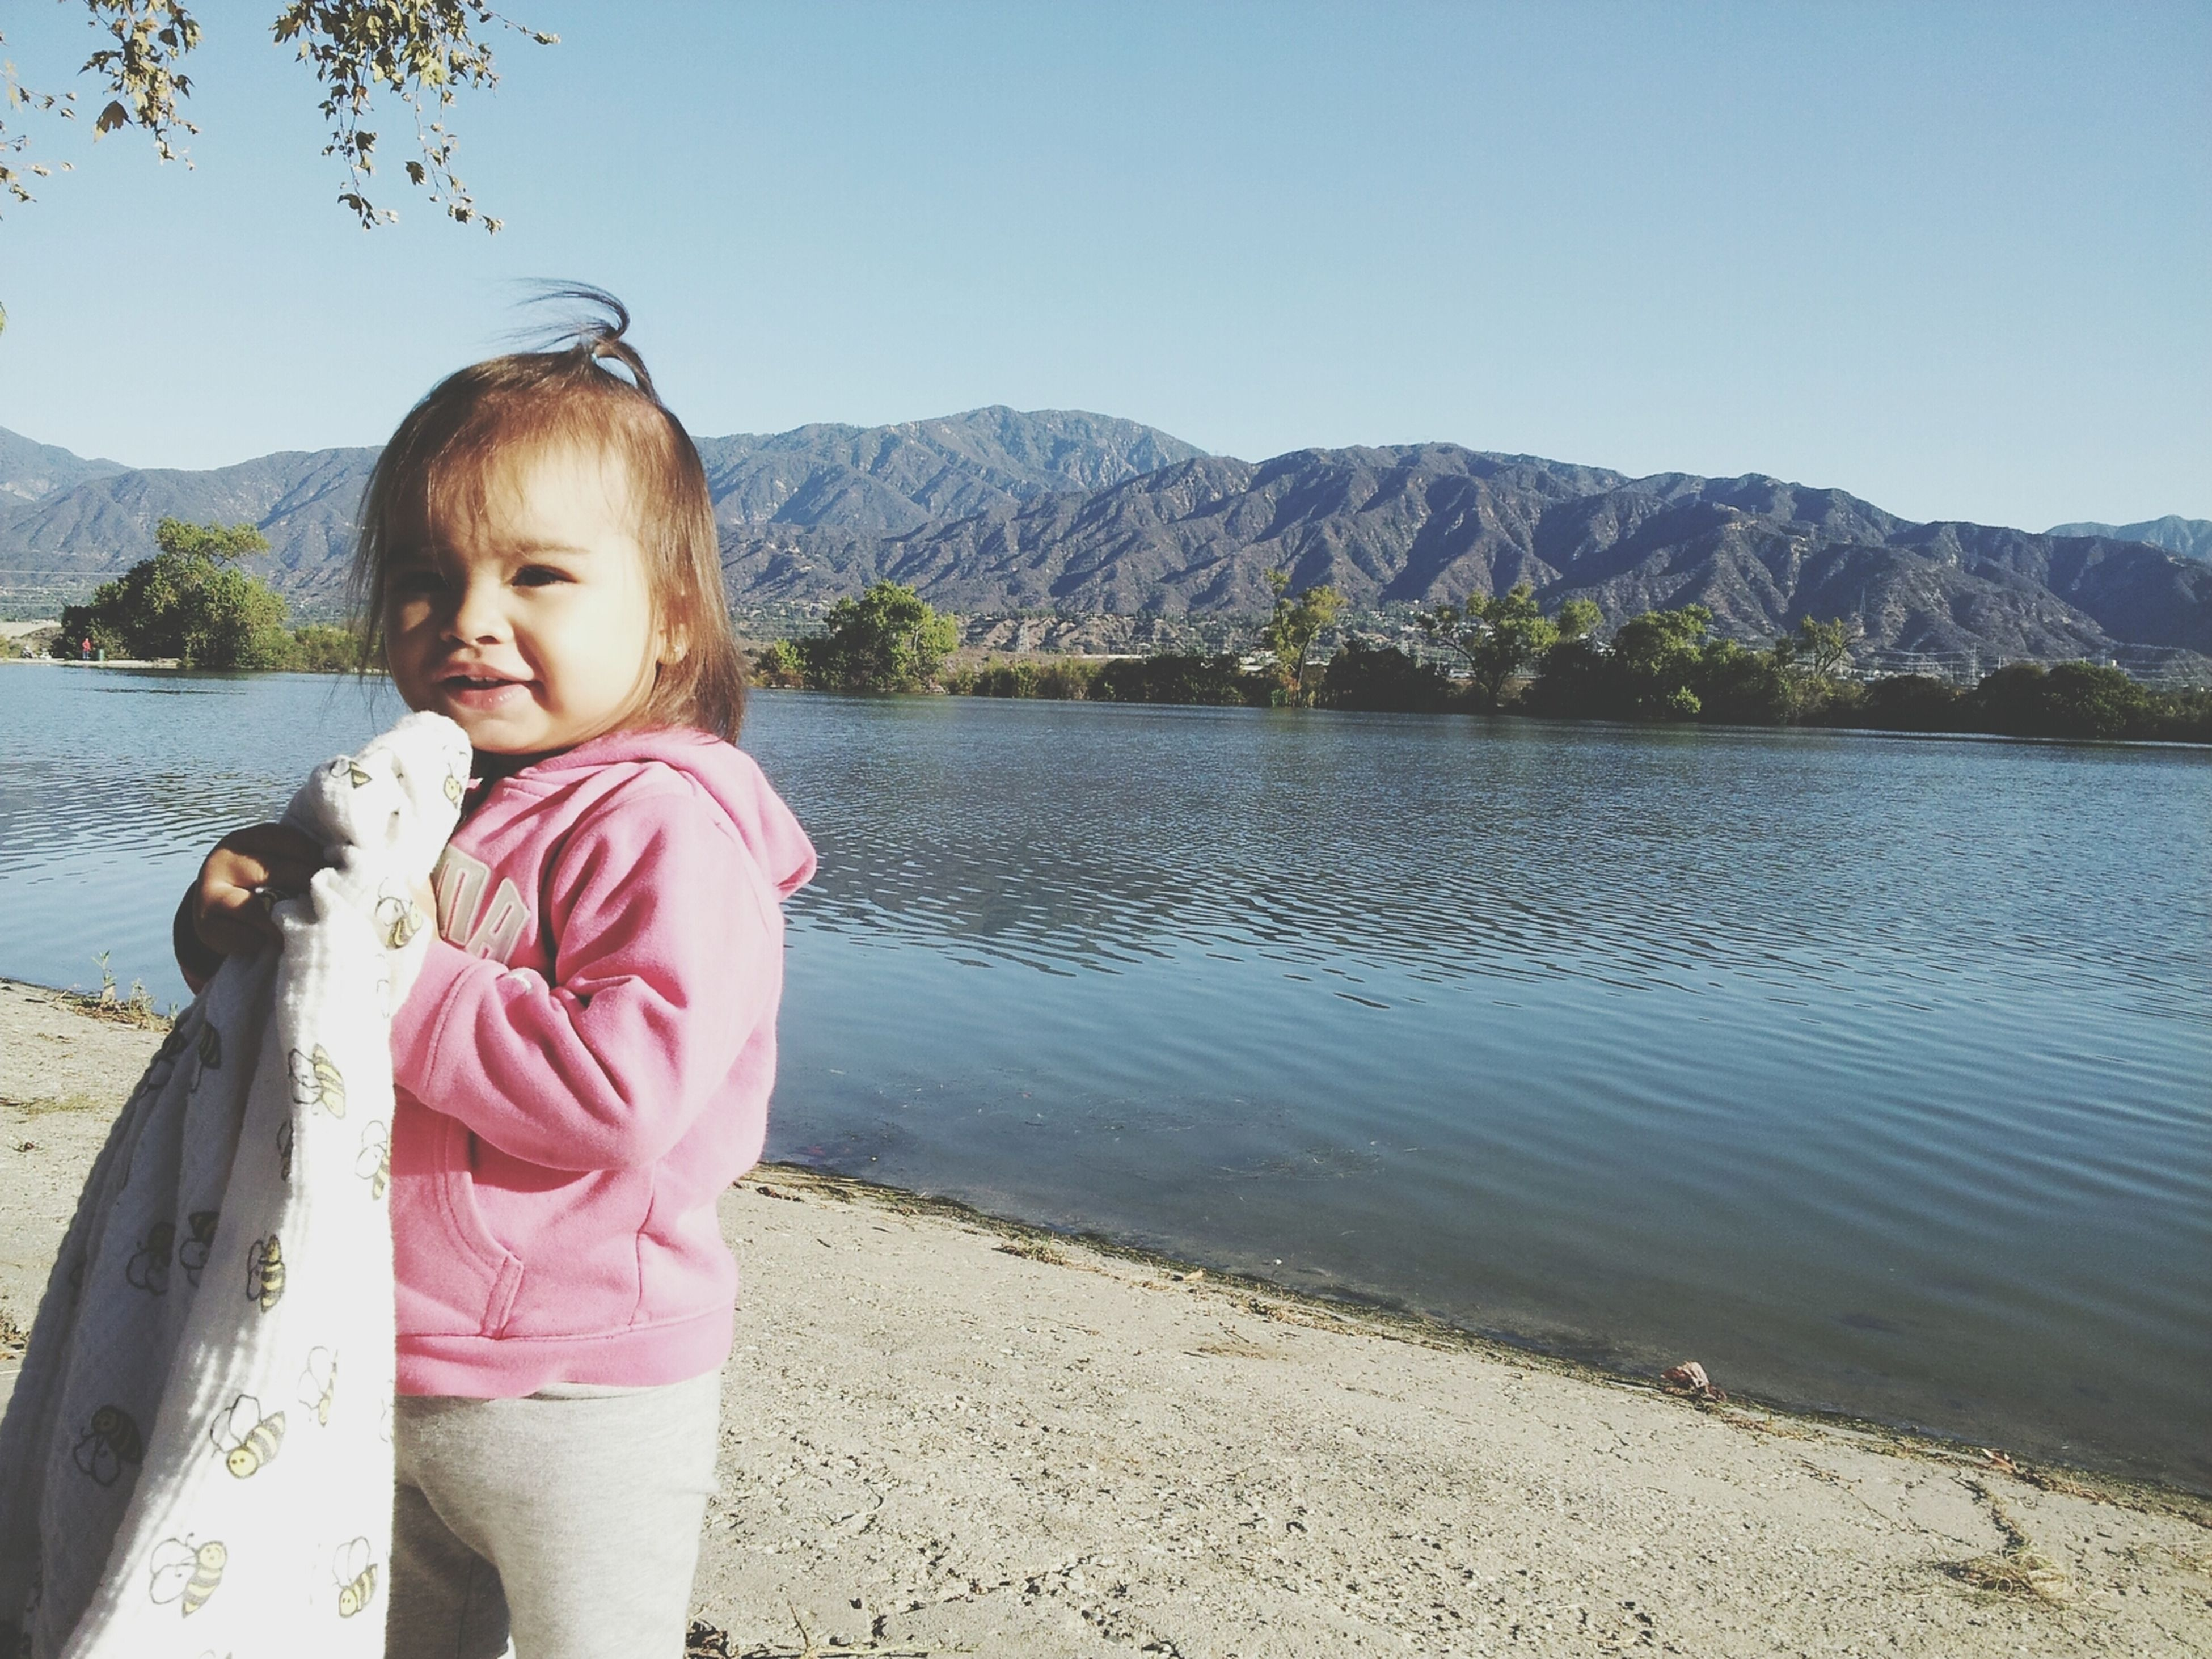 water, lake, lifestyles, casual clothing, leisure activity, standing, person, beauty in nature, nature, tranquility, childhood, scenics, tranquil scene, river, clear sky, mountain, girls, full length